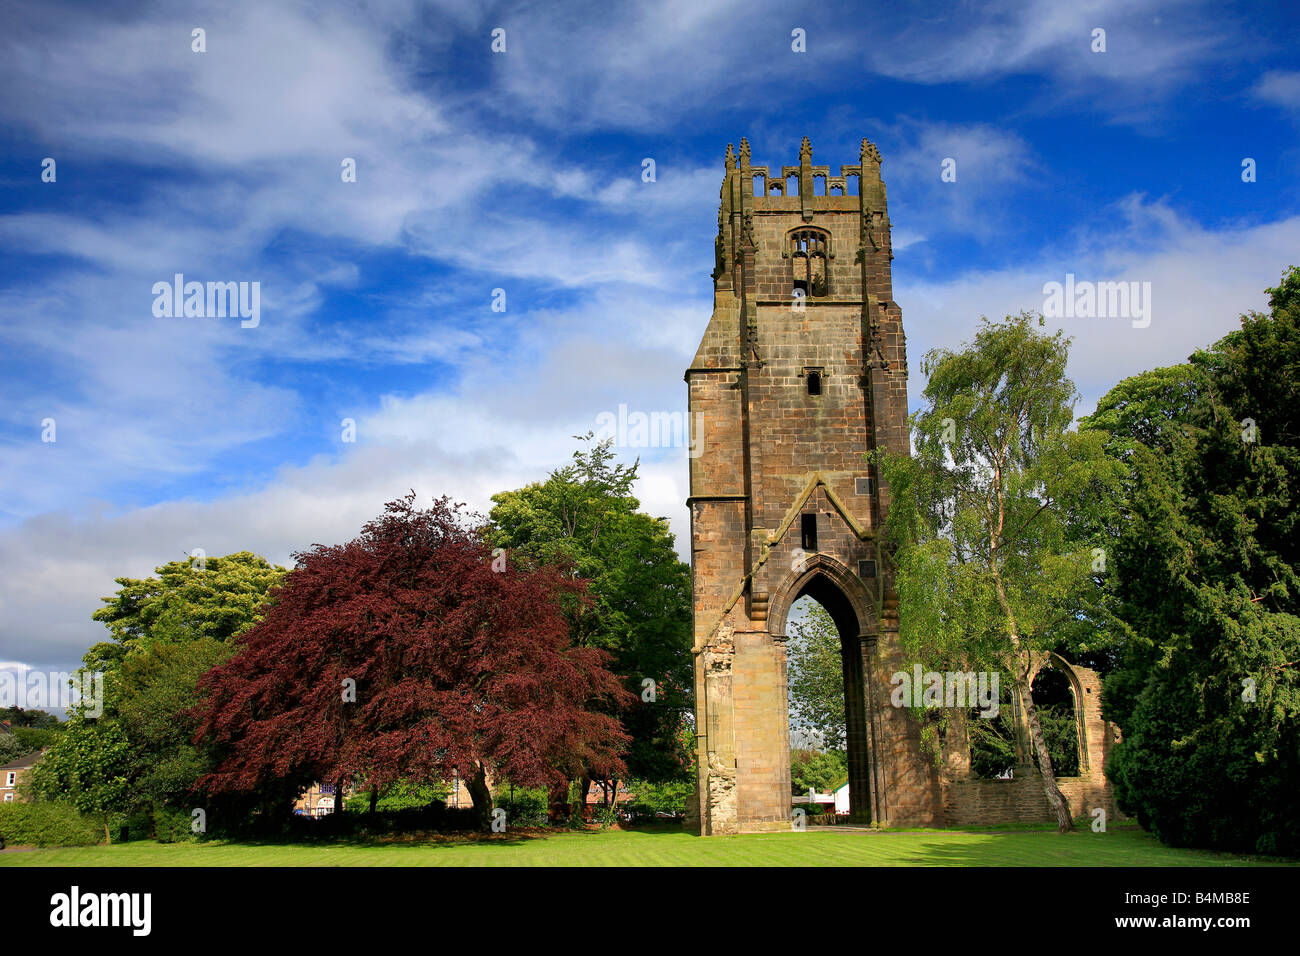 Franciscan Friary Bell Tower Richmond City Yorkshire Dales England Britain UK - Stock Image